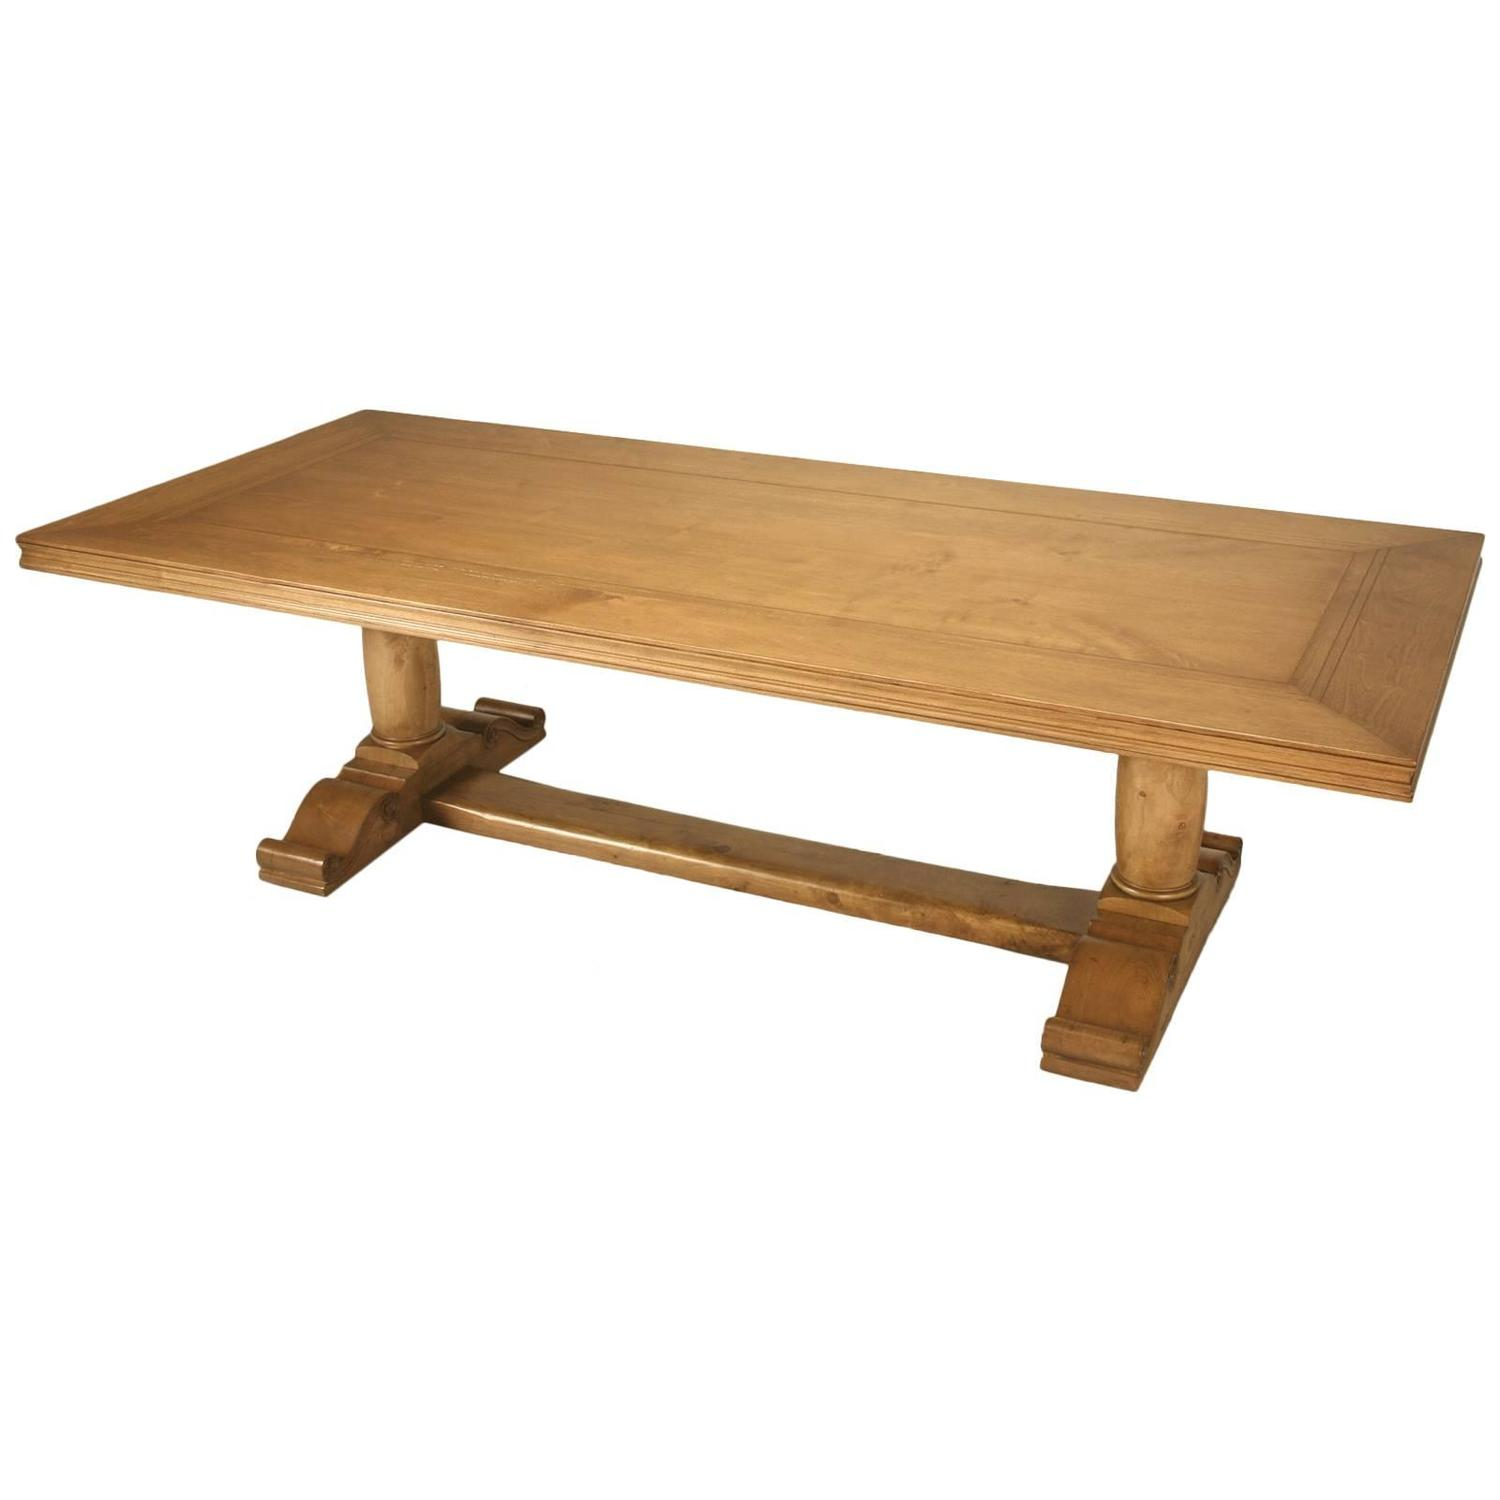 Custom handmade french walnut trestle dining table at 1stdibs Trestle dining table